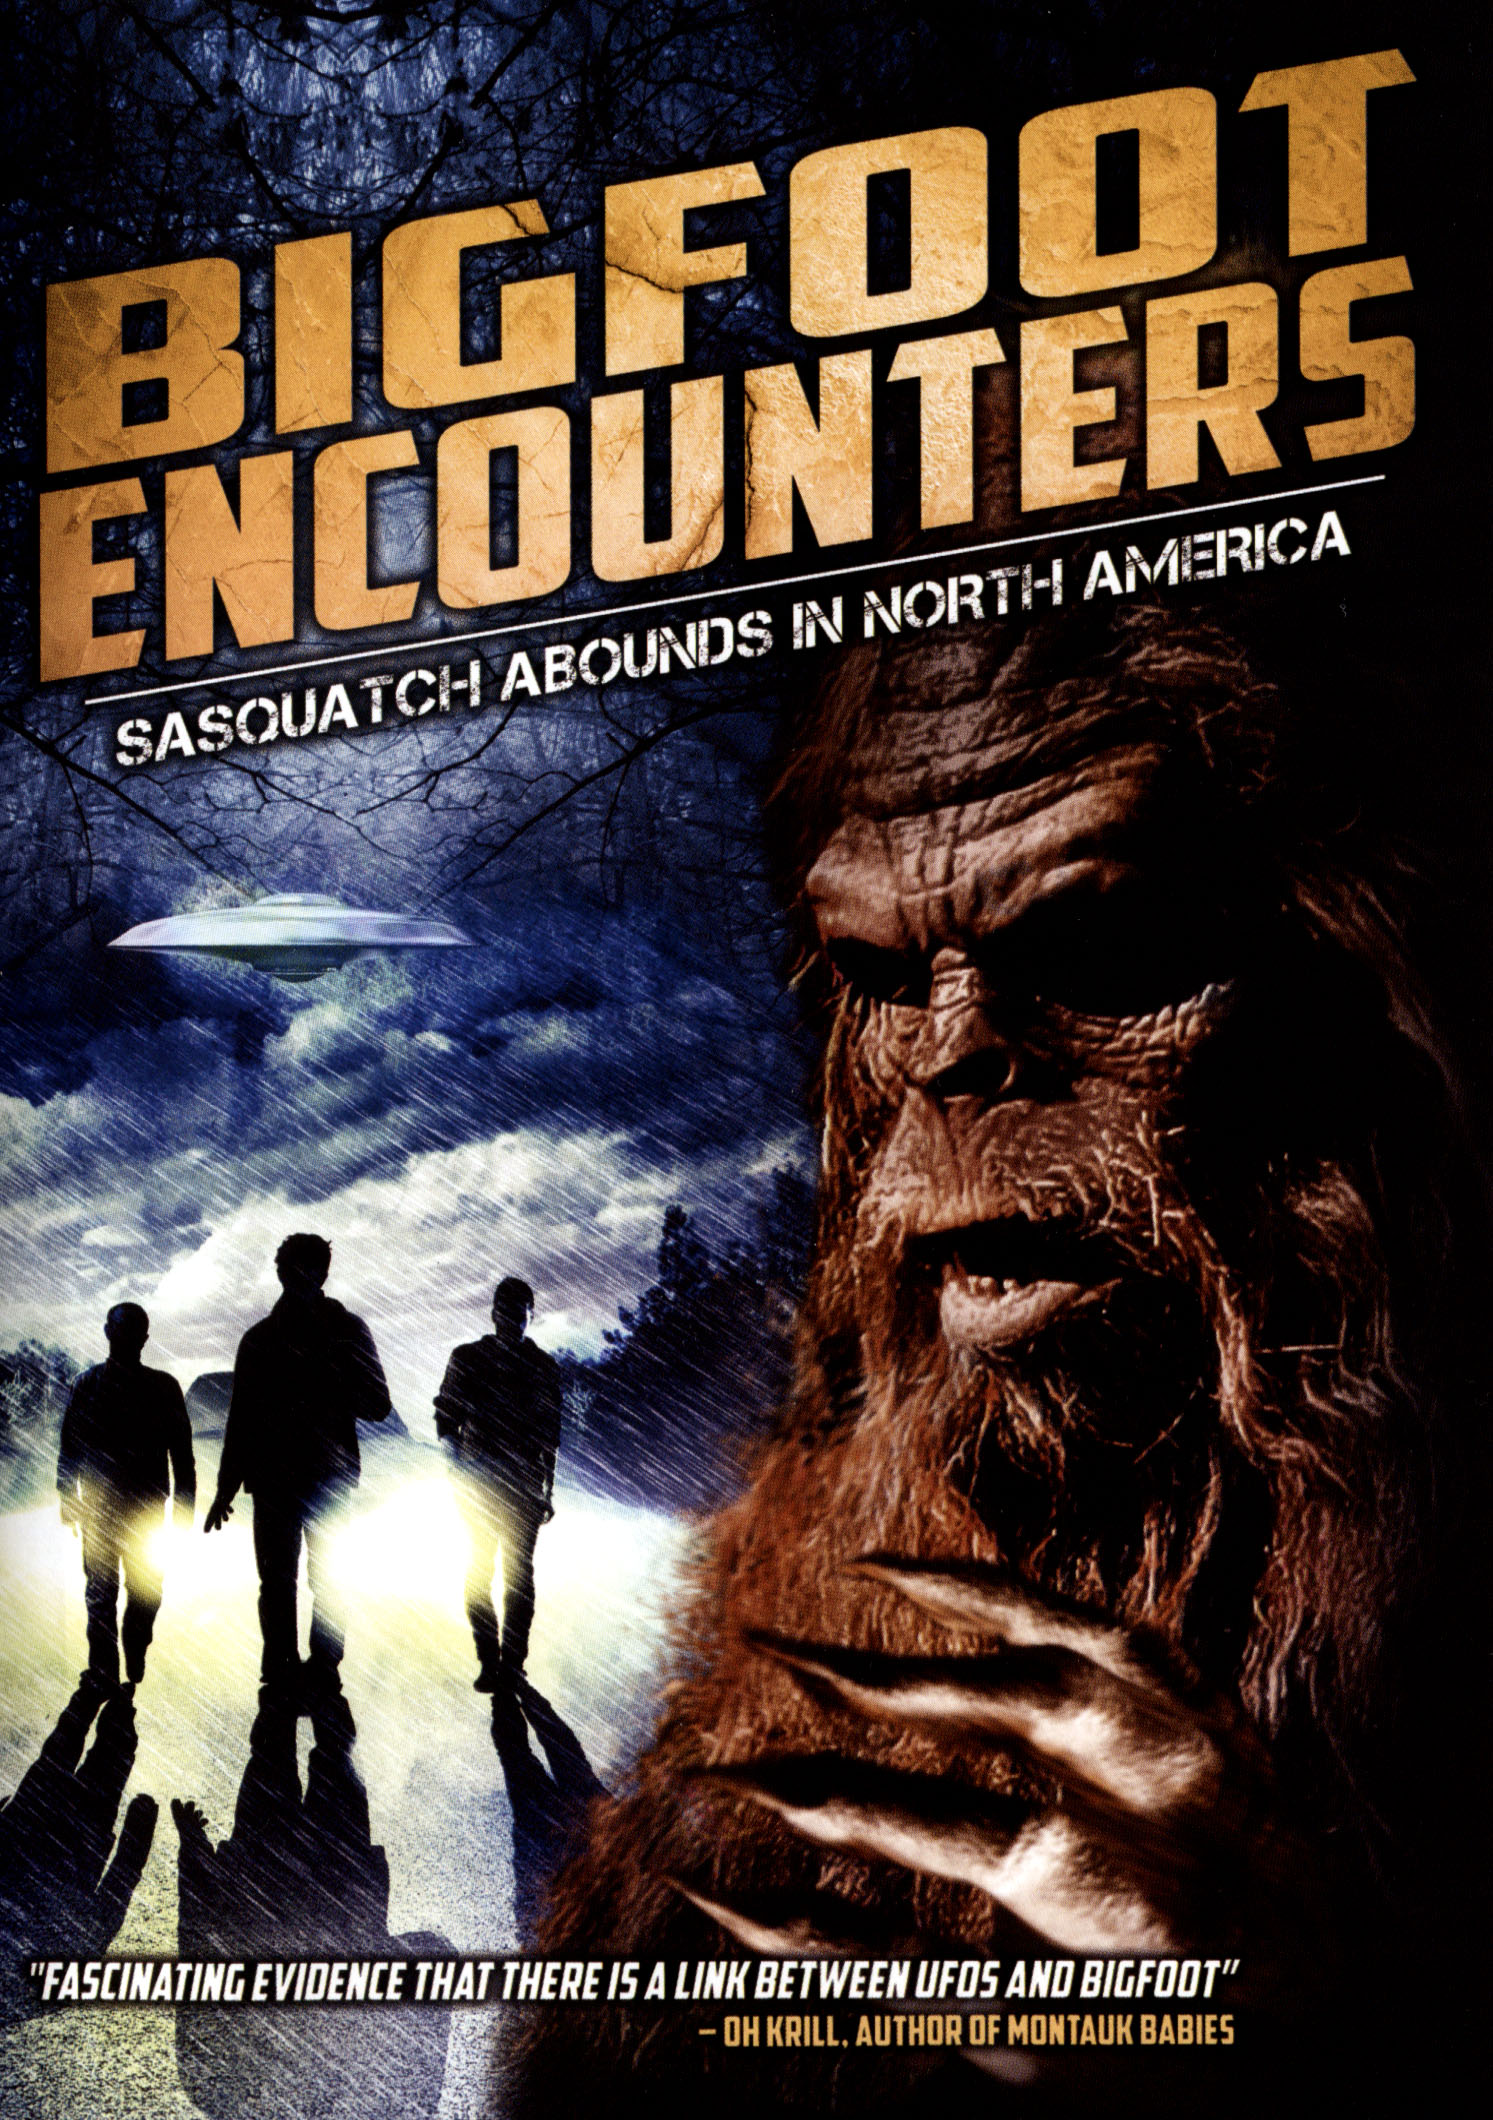 Bigfoot Encounters: Sasquatch Abounds in North America